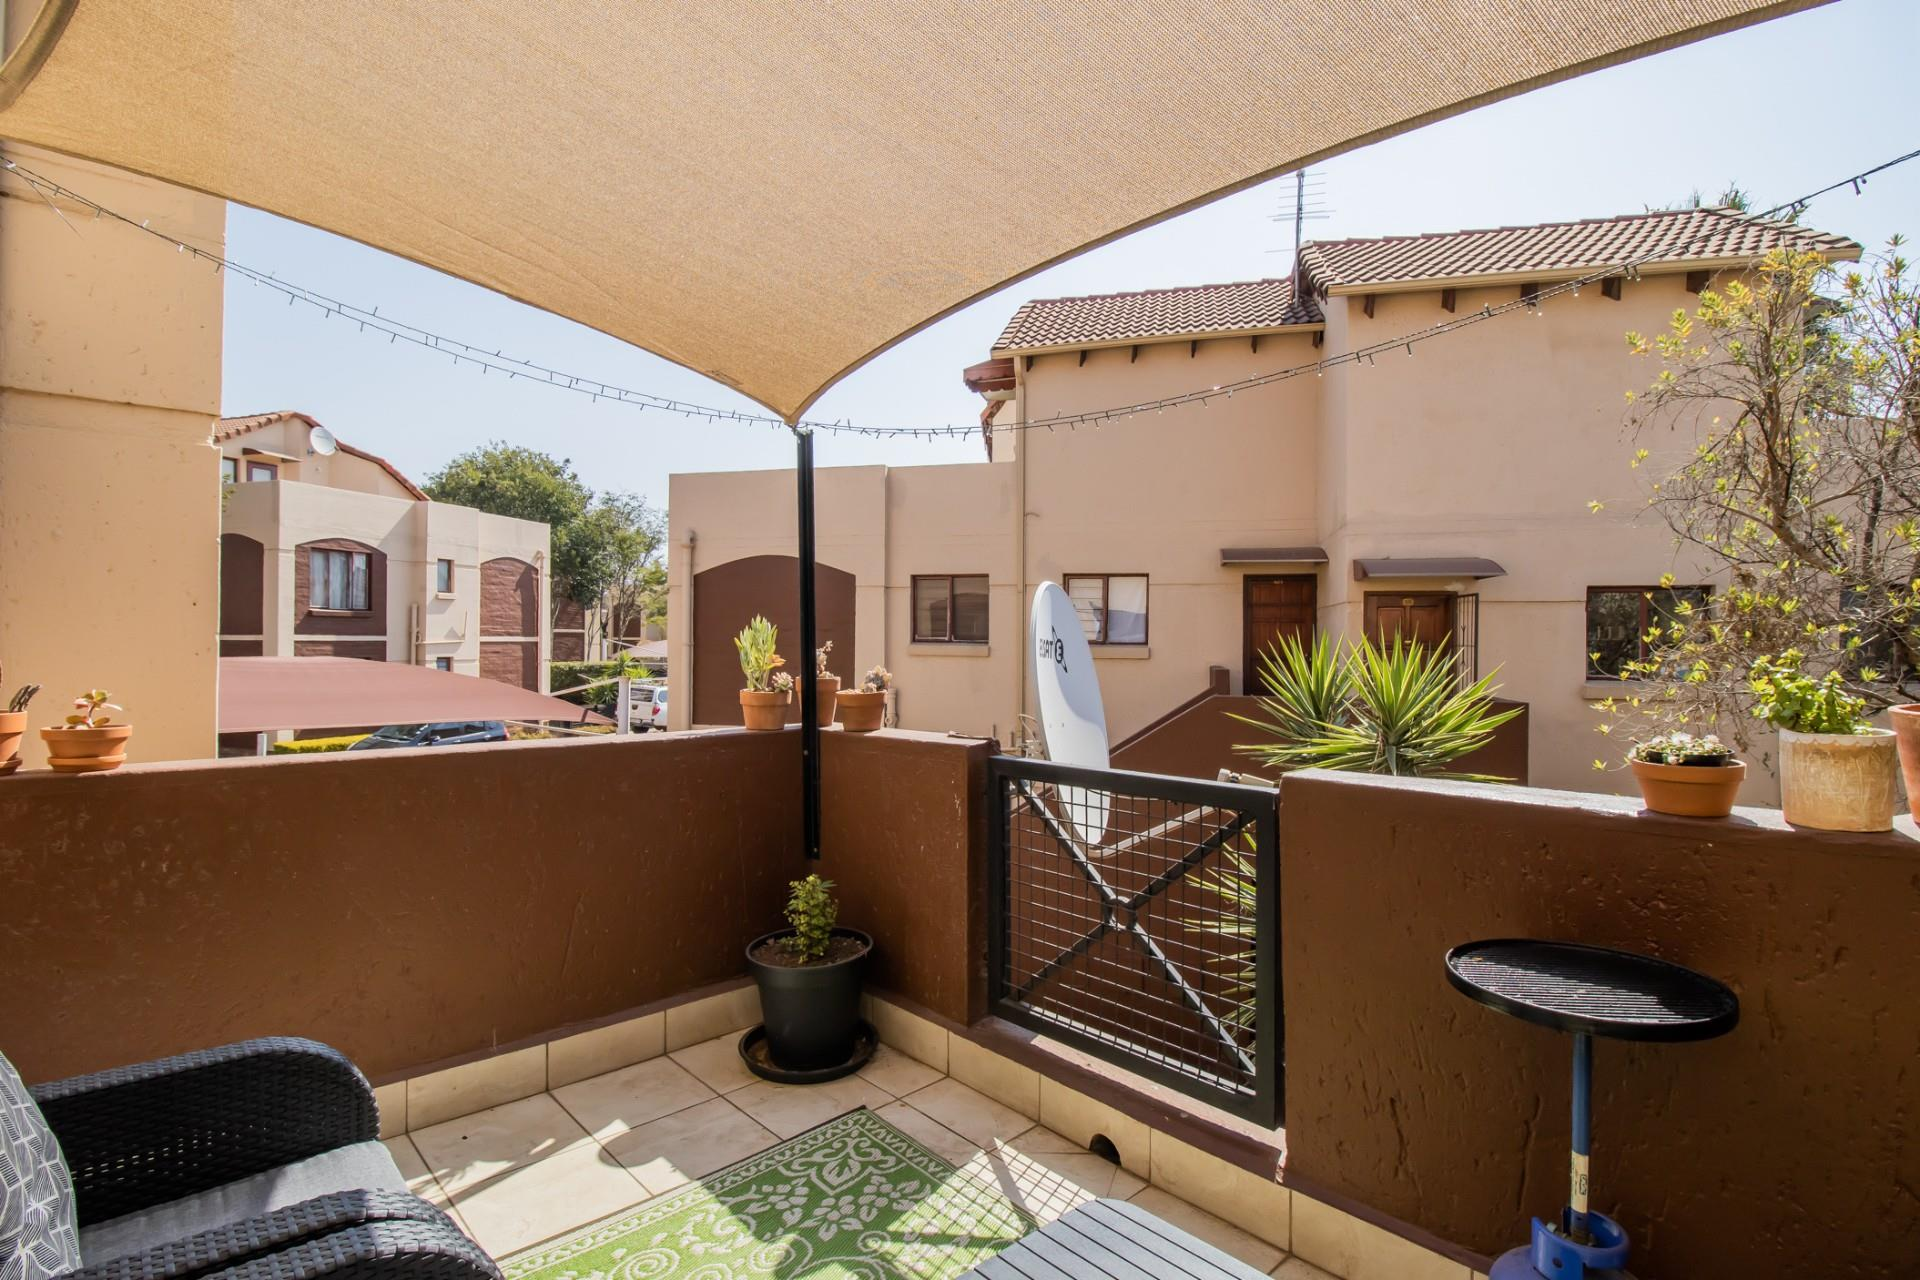 2 Bedroom Apartment / Flat For Sale in Bromhof